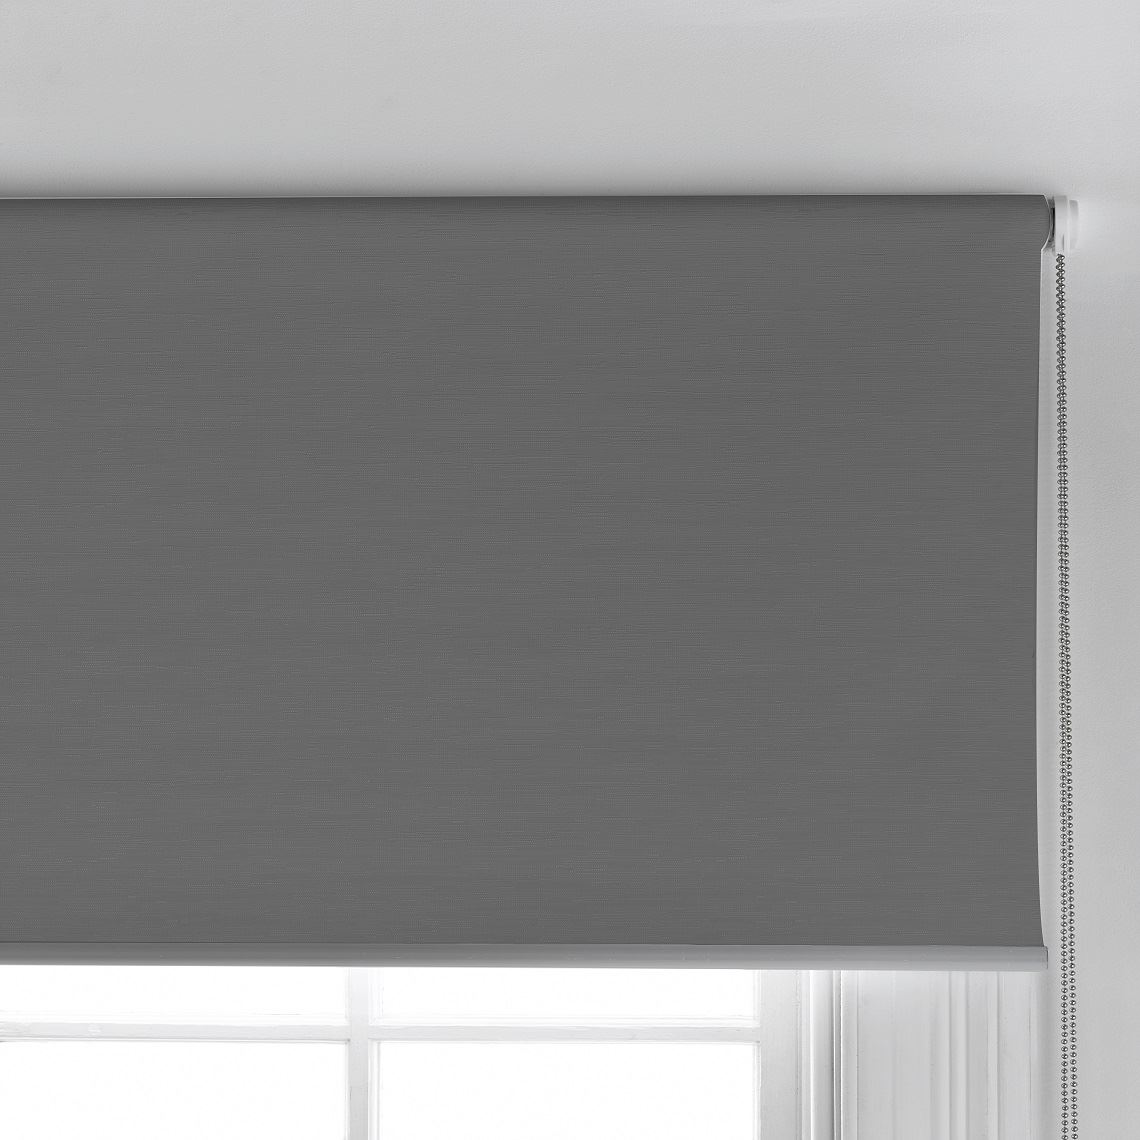 Ashcroft Blockout Roller Blind Size W 150cm x D 0cm x H 210cm in Charcoal 100% Polyester Freedom by Freedom, a Curtains for sale on Style Sourcebook